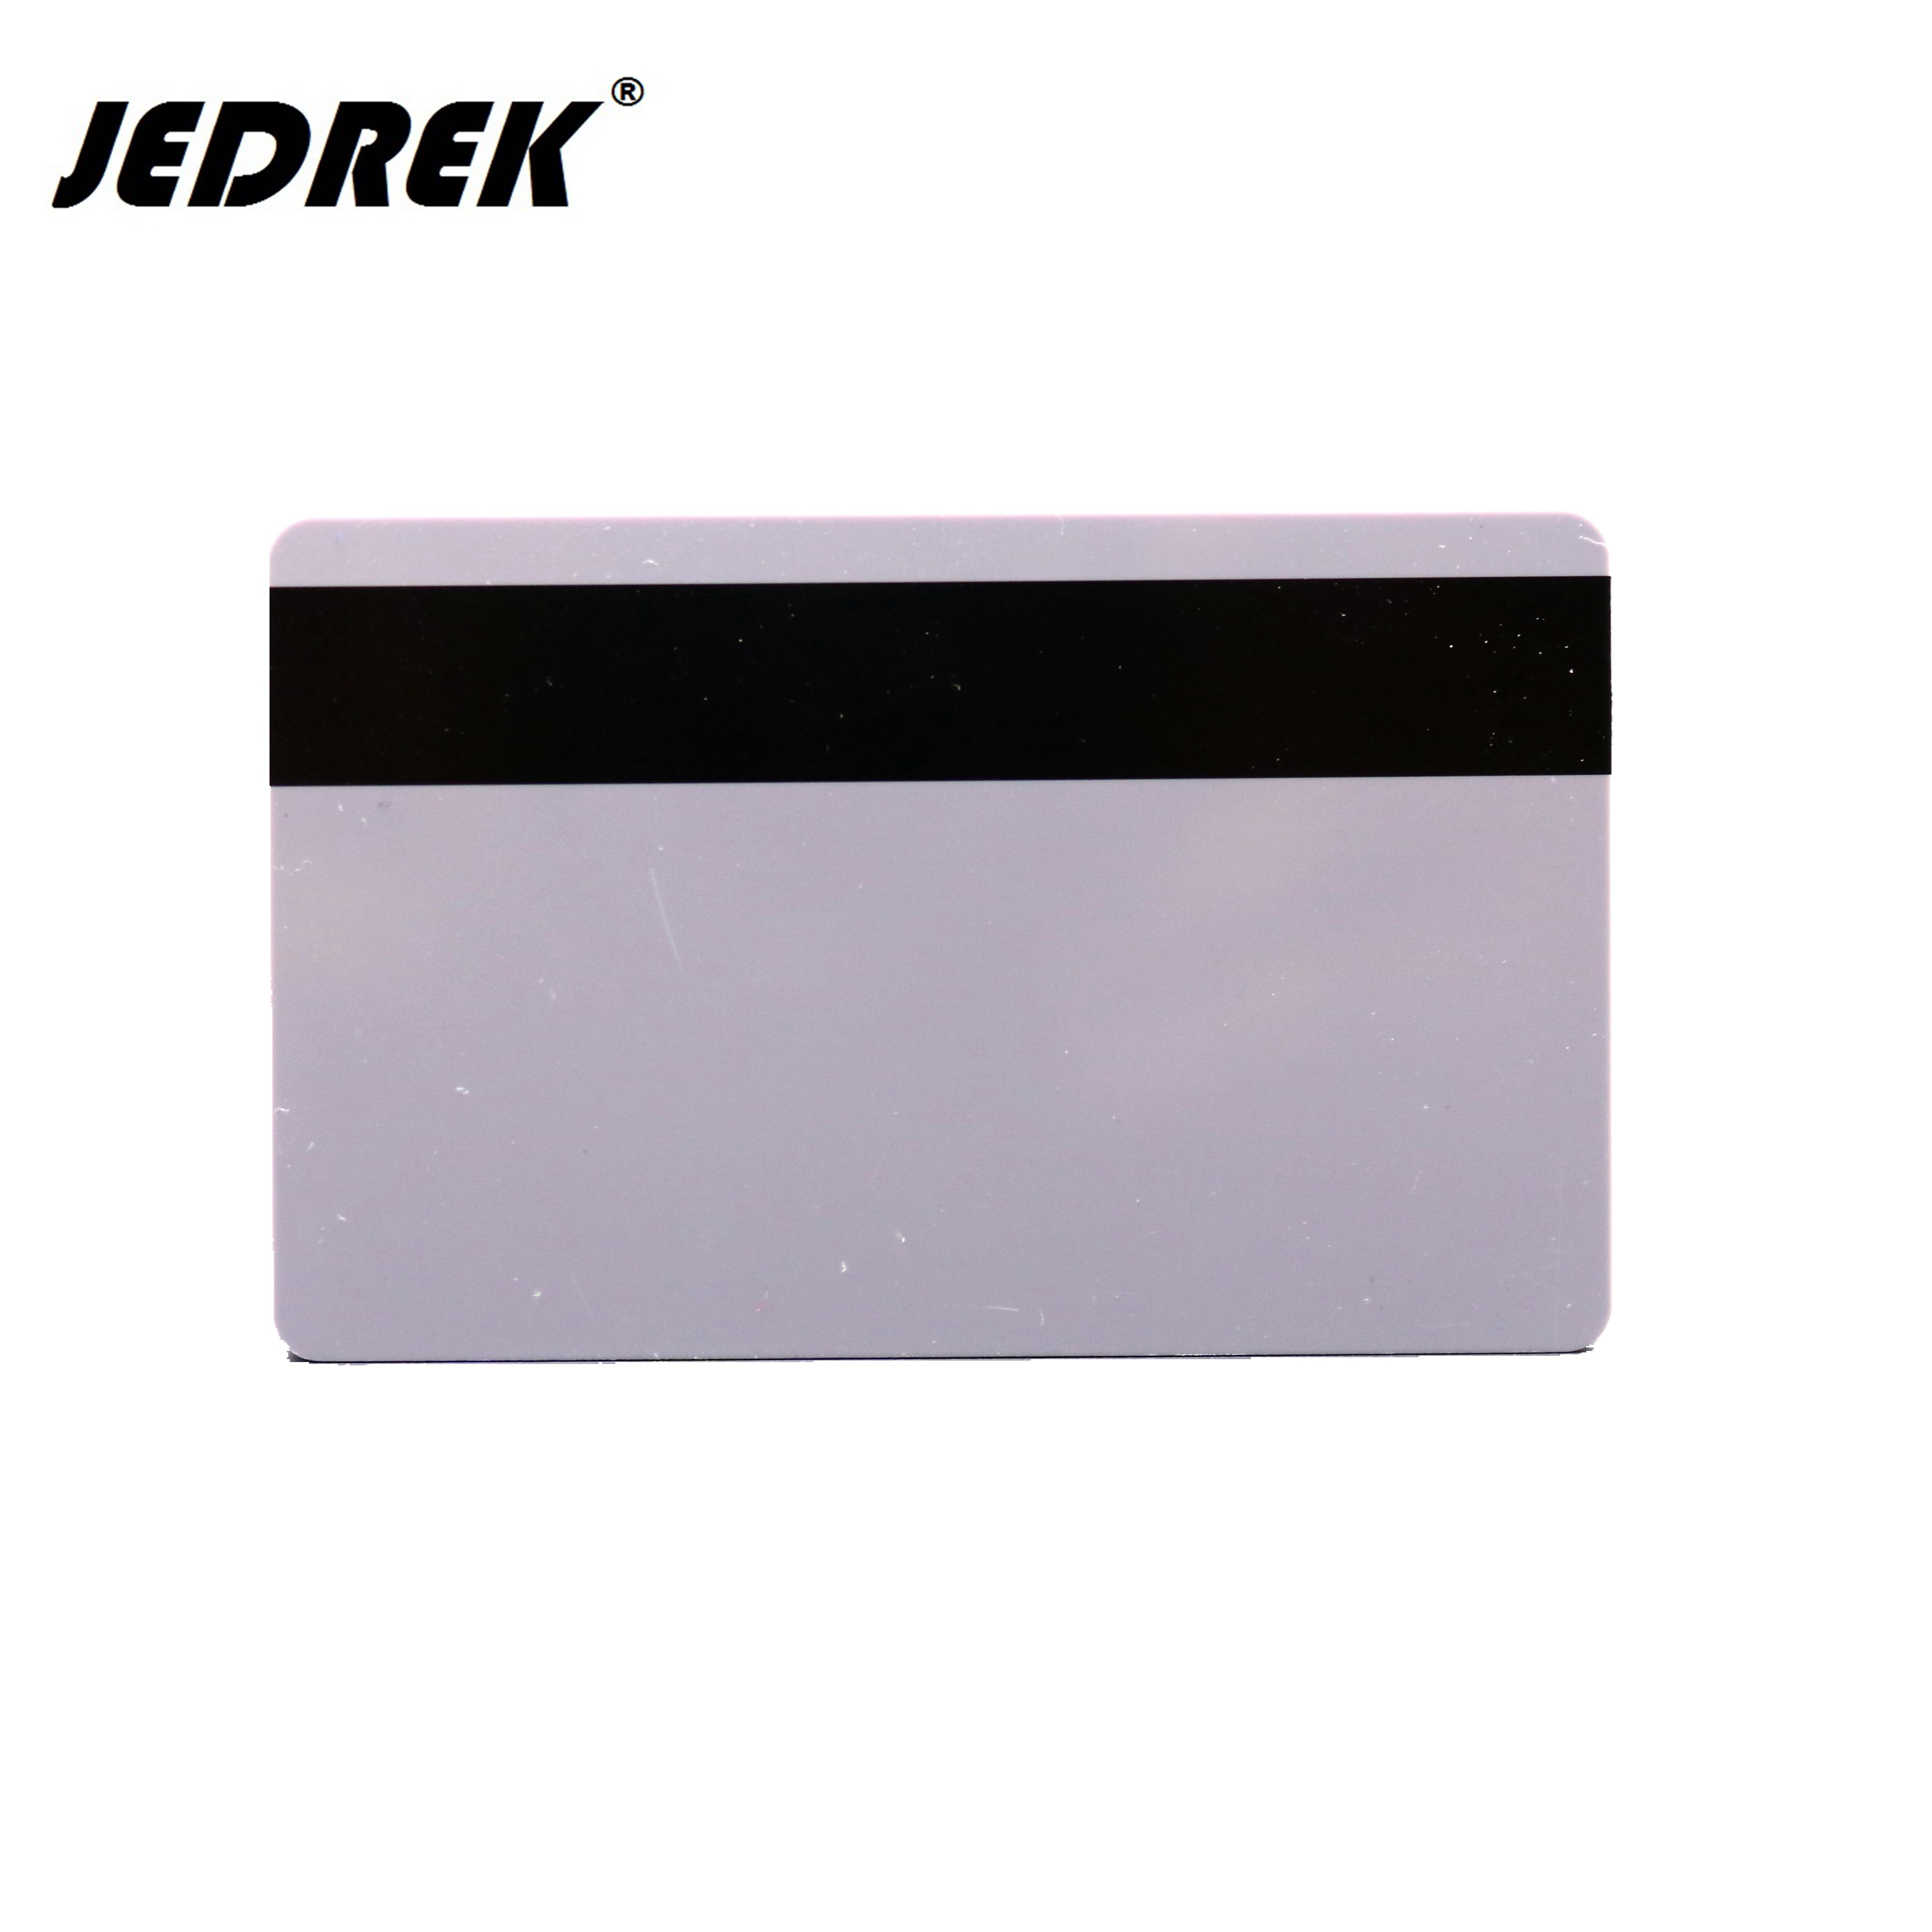 Blank PVC Magnetic Stripe Card 2750 OE Hi-Co 3 Track Magnetic Card Support High Resistance 200pcs track 1 2 and 3 magnetic stripe blank card for school library management access control